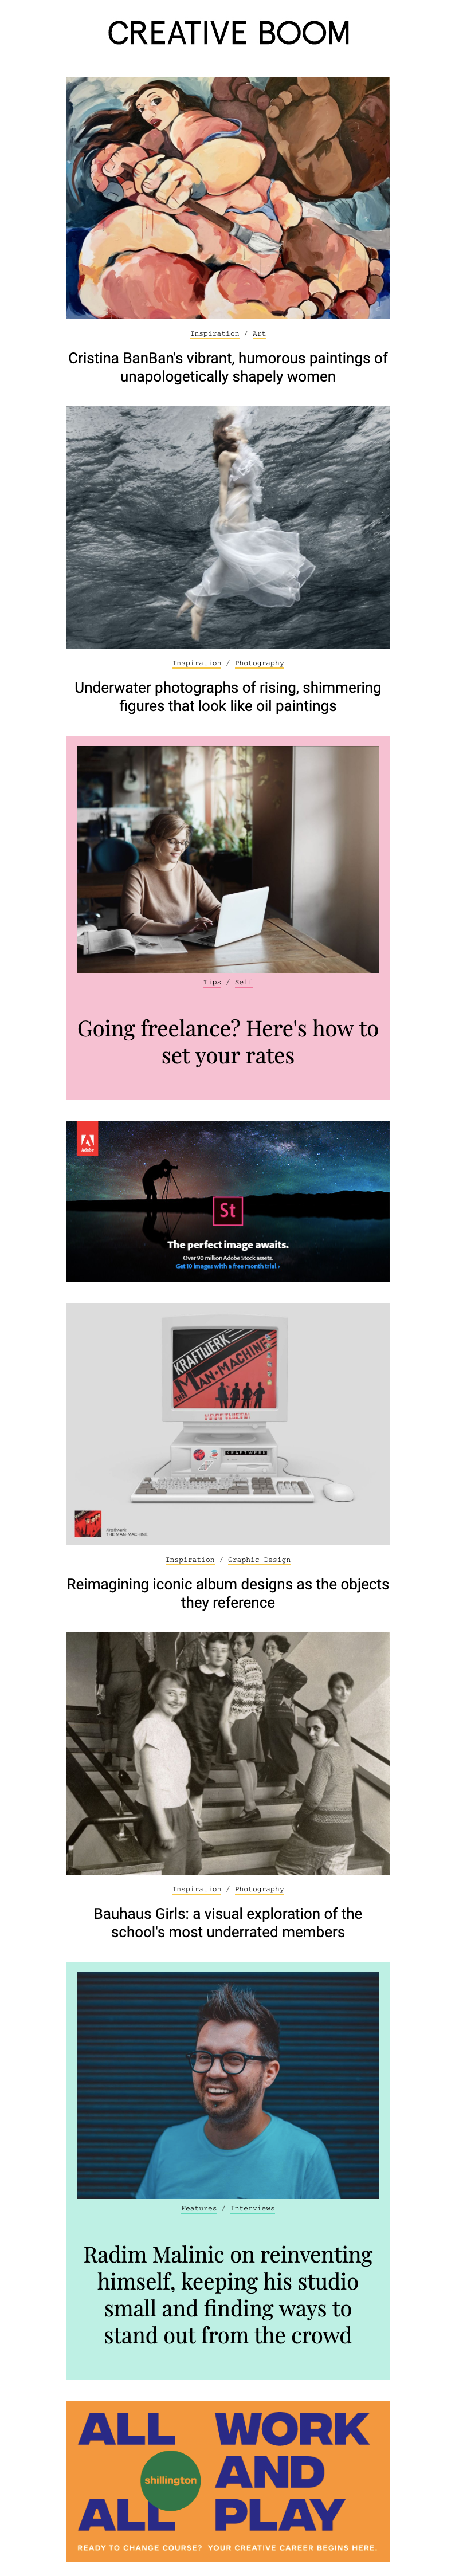 web newsletter template with content blocks